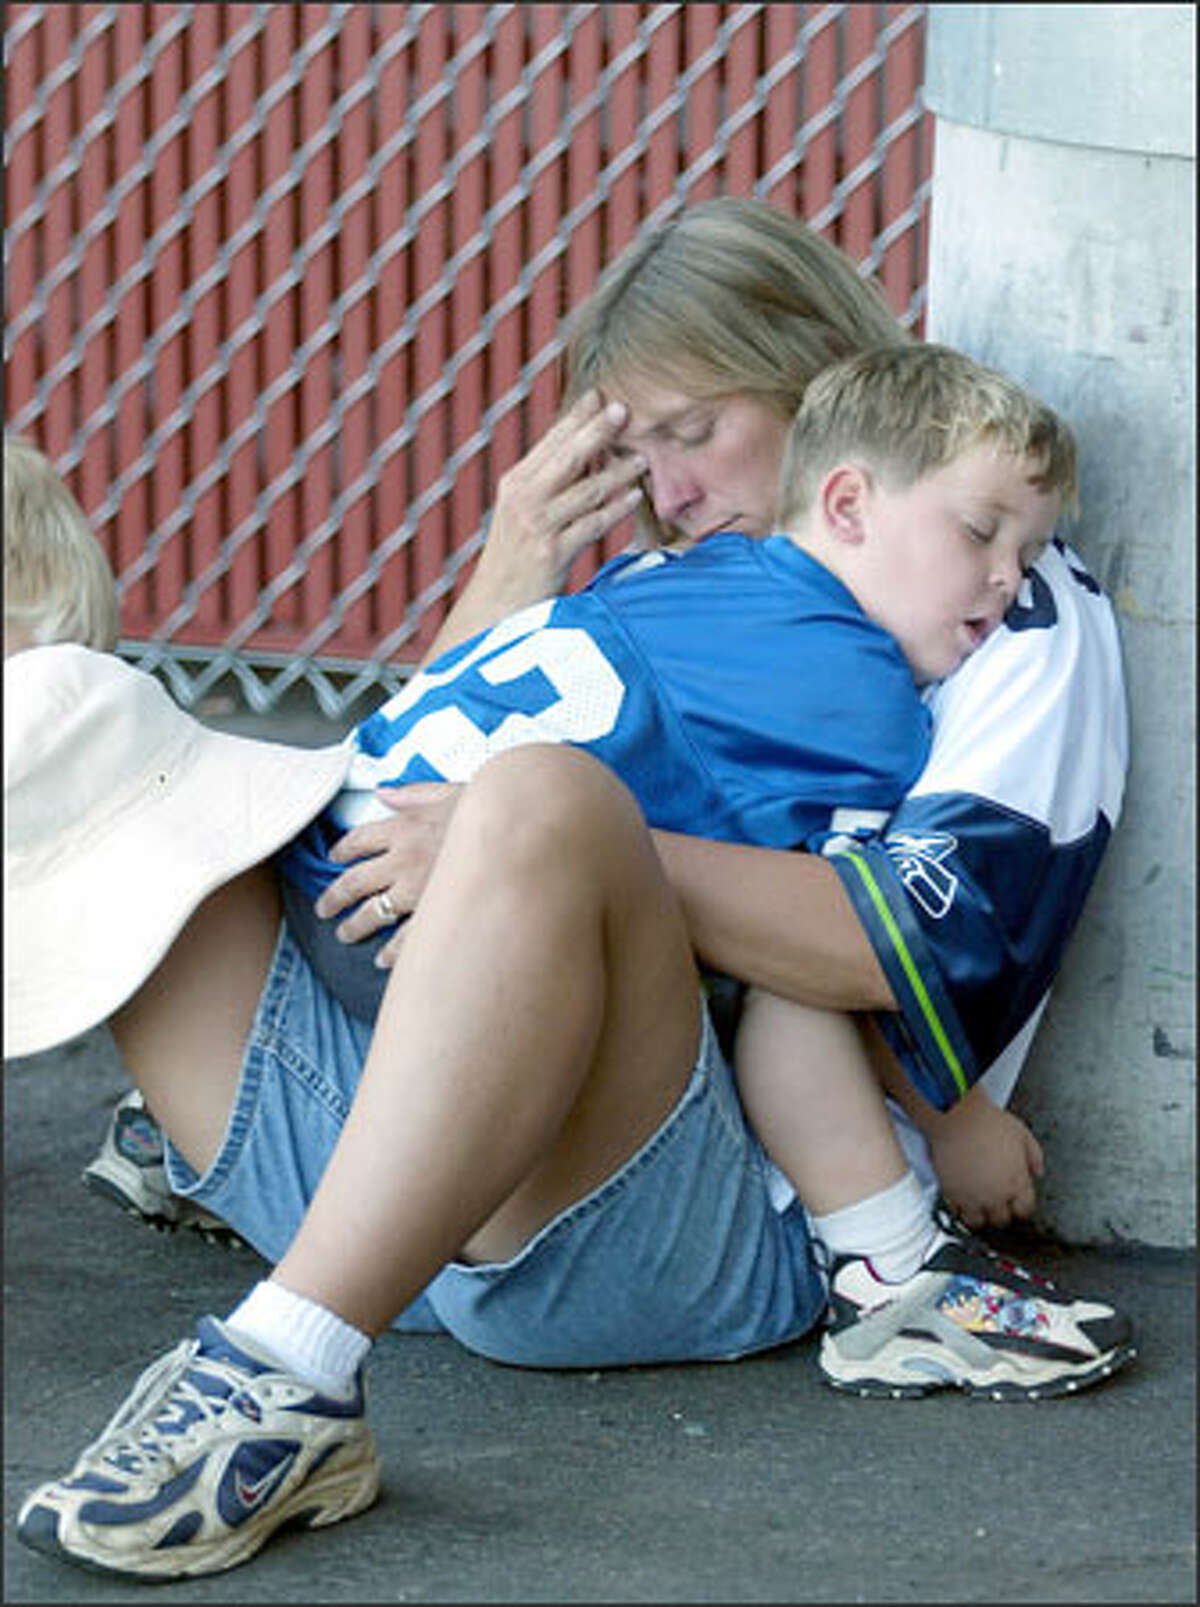 Seahawks fans Kim Rucker and son Jared Rucker from Athens, Tenn., try to sleep off a disappointing afternoon.